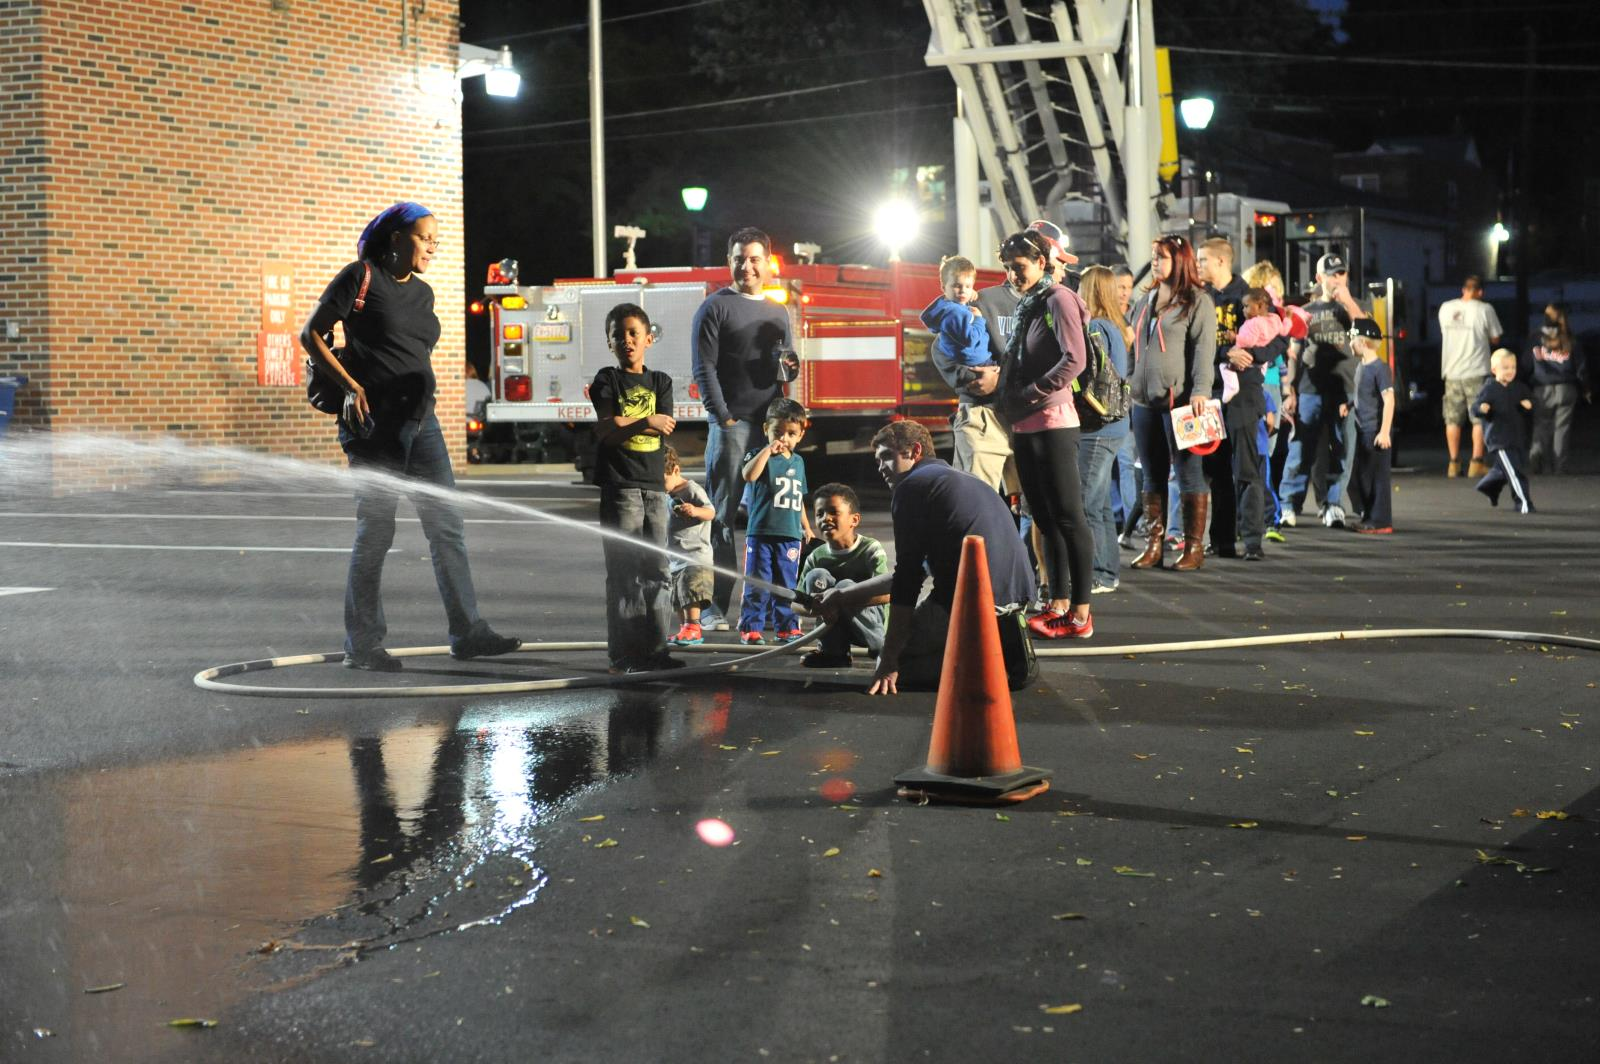 Kid spraying fire hose at fire station open house